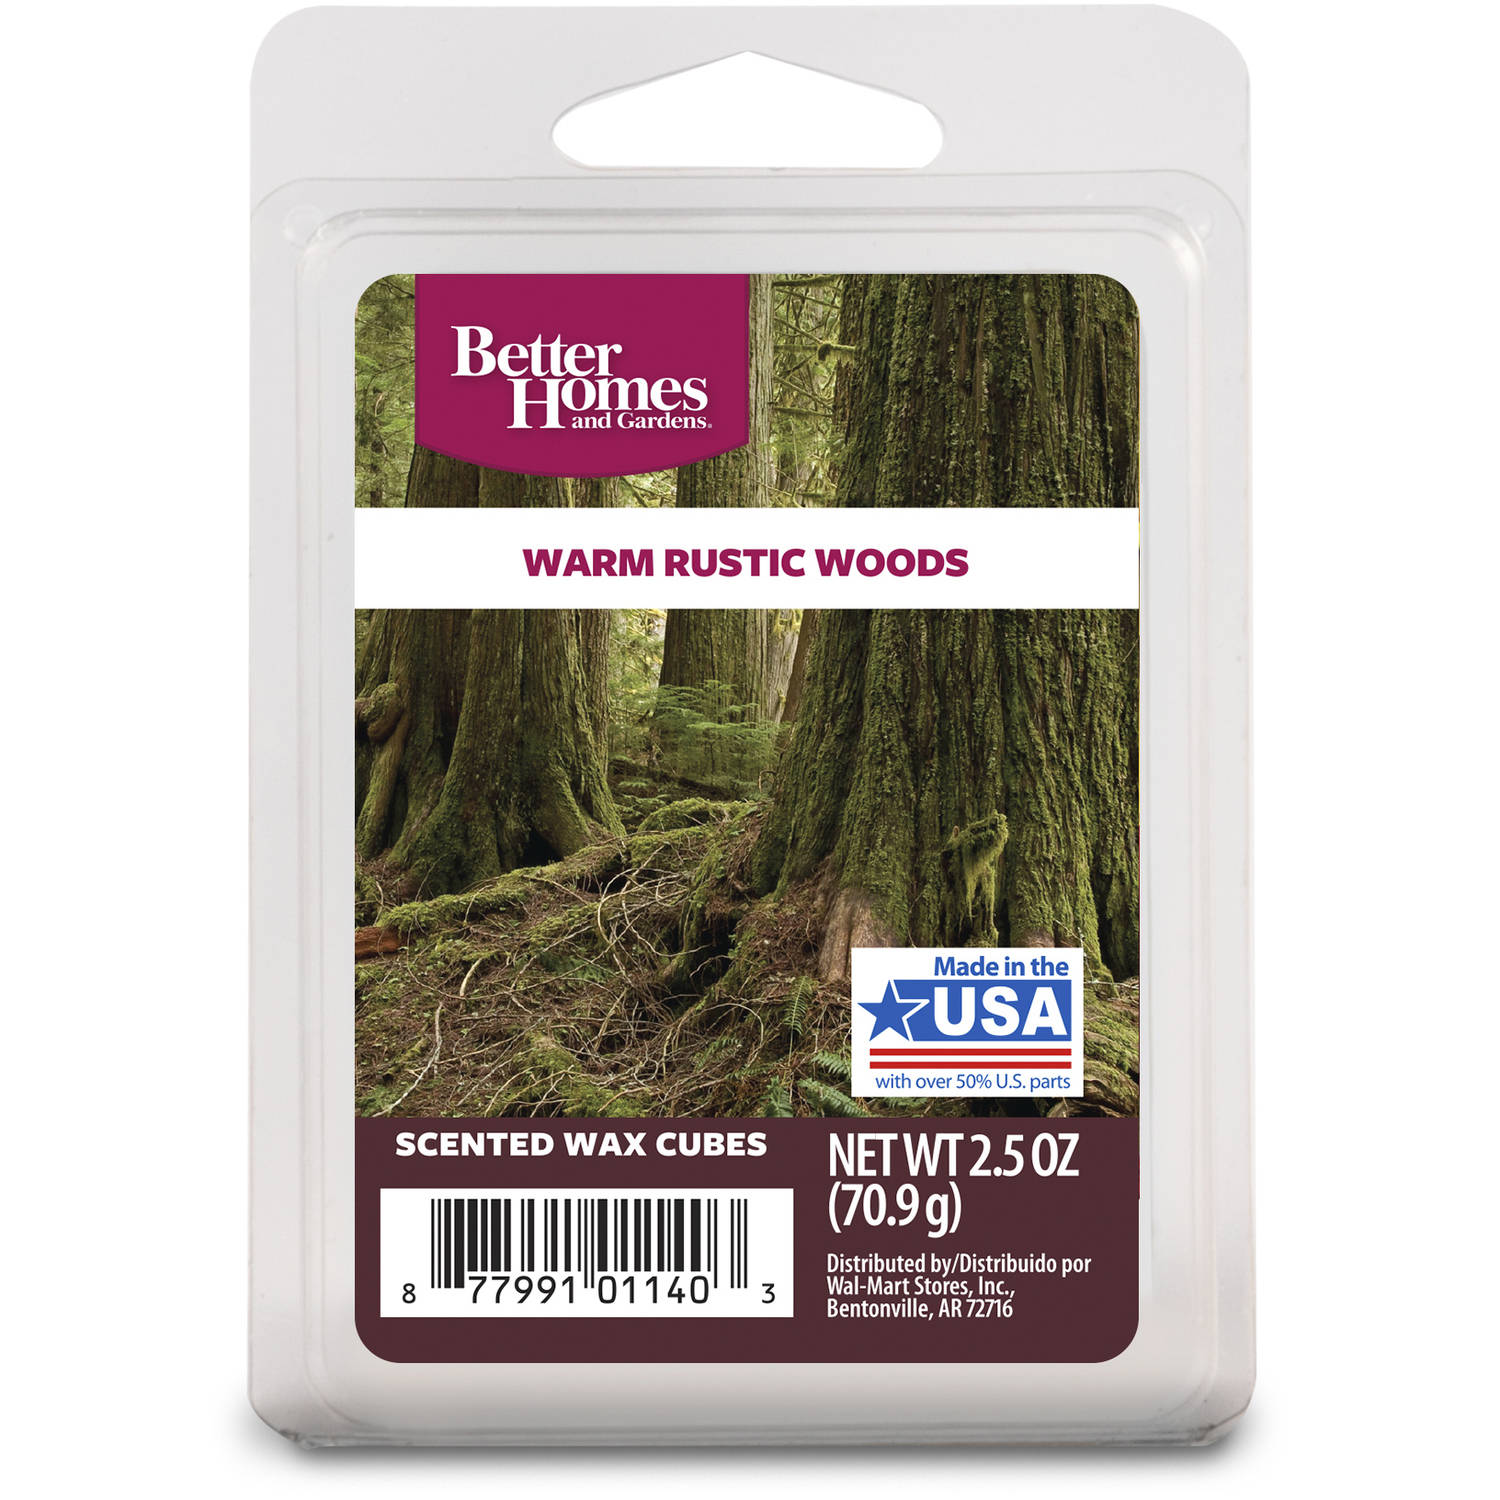 Better Homes & Gardens Warm Rustic Woods Fragrance Cubes